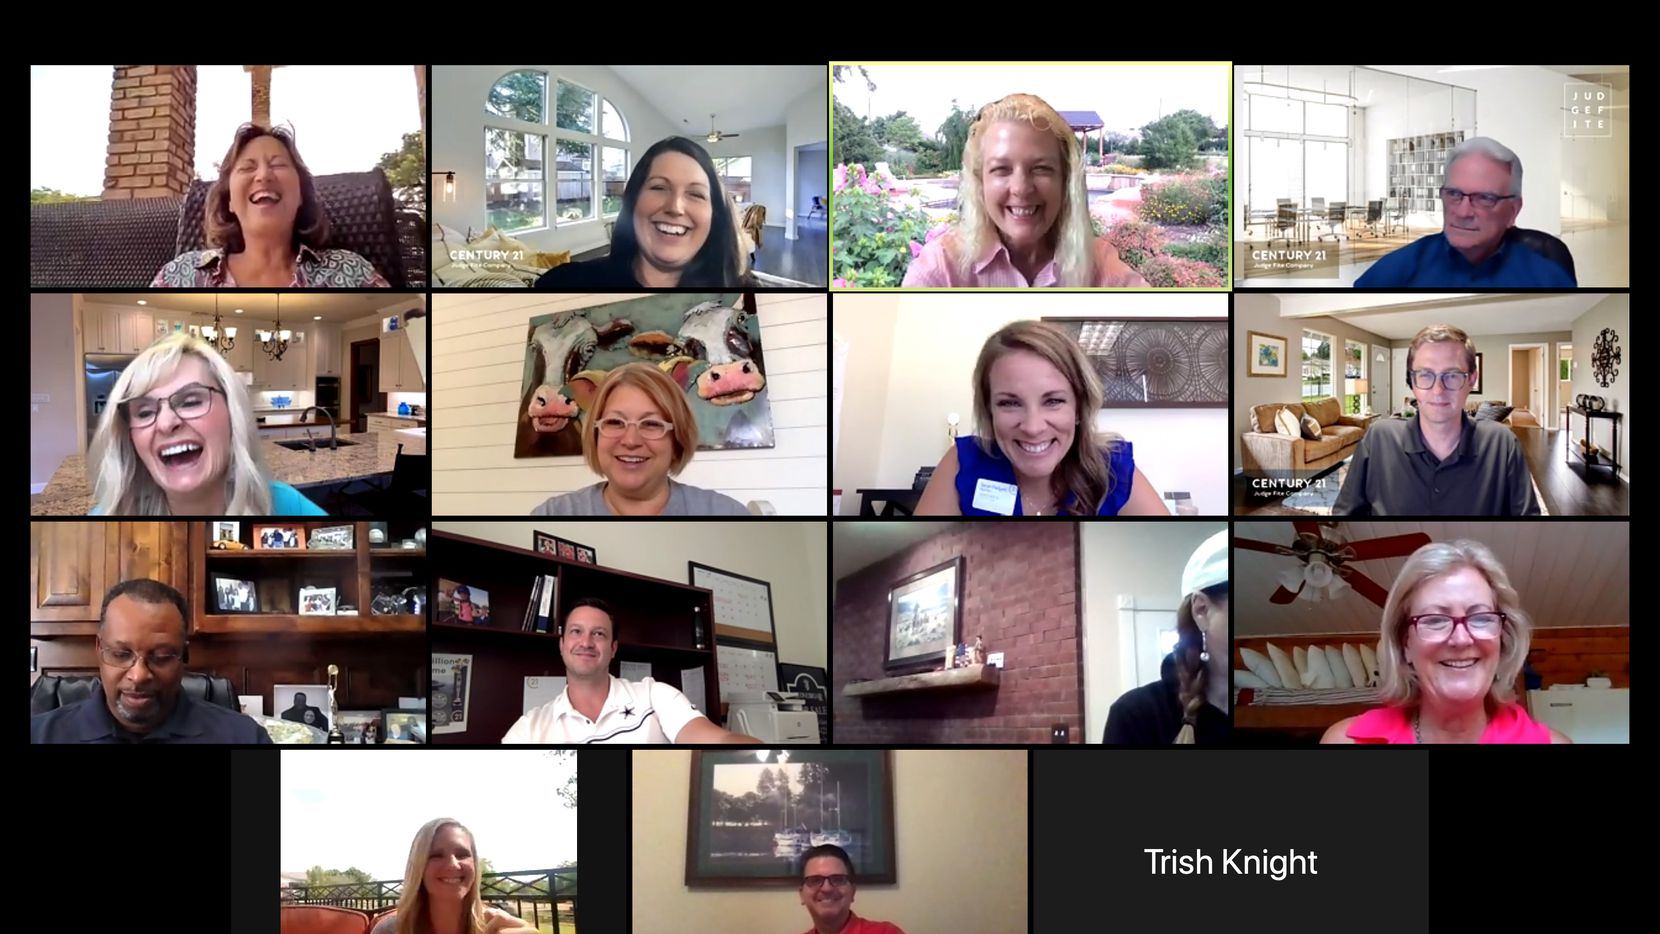 CENTURY 21 Judge Fite Company real estate agents gathered for a company happy hour via Zoom on Aug. 25.